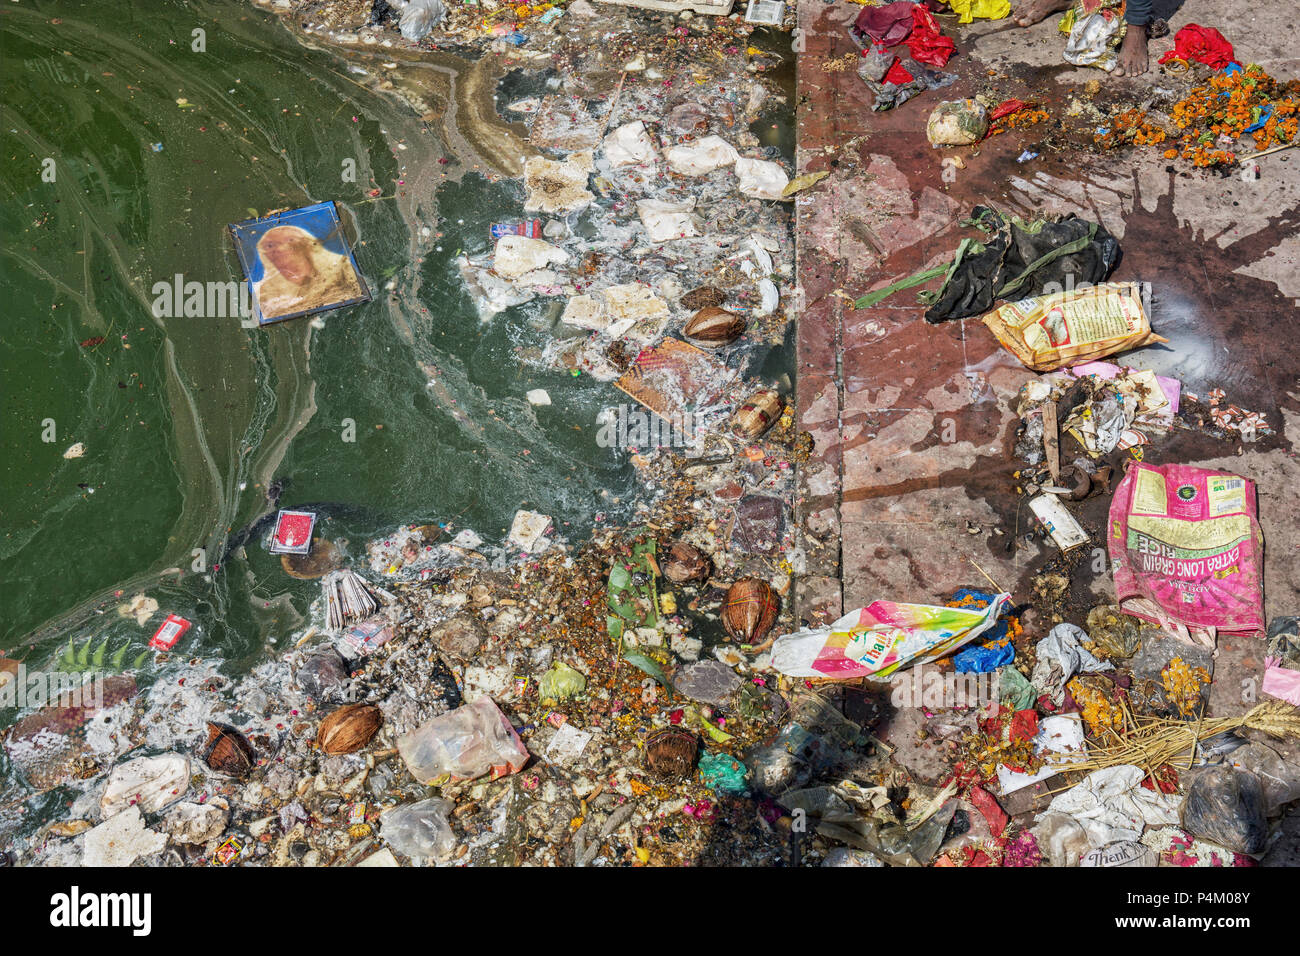 Pollution on the beach of tropical sea. Plastic garbage, foam, wood and dirty waste on beach in summer day - Stock Image